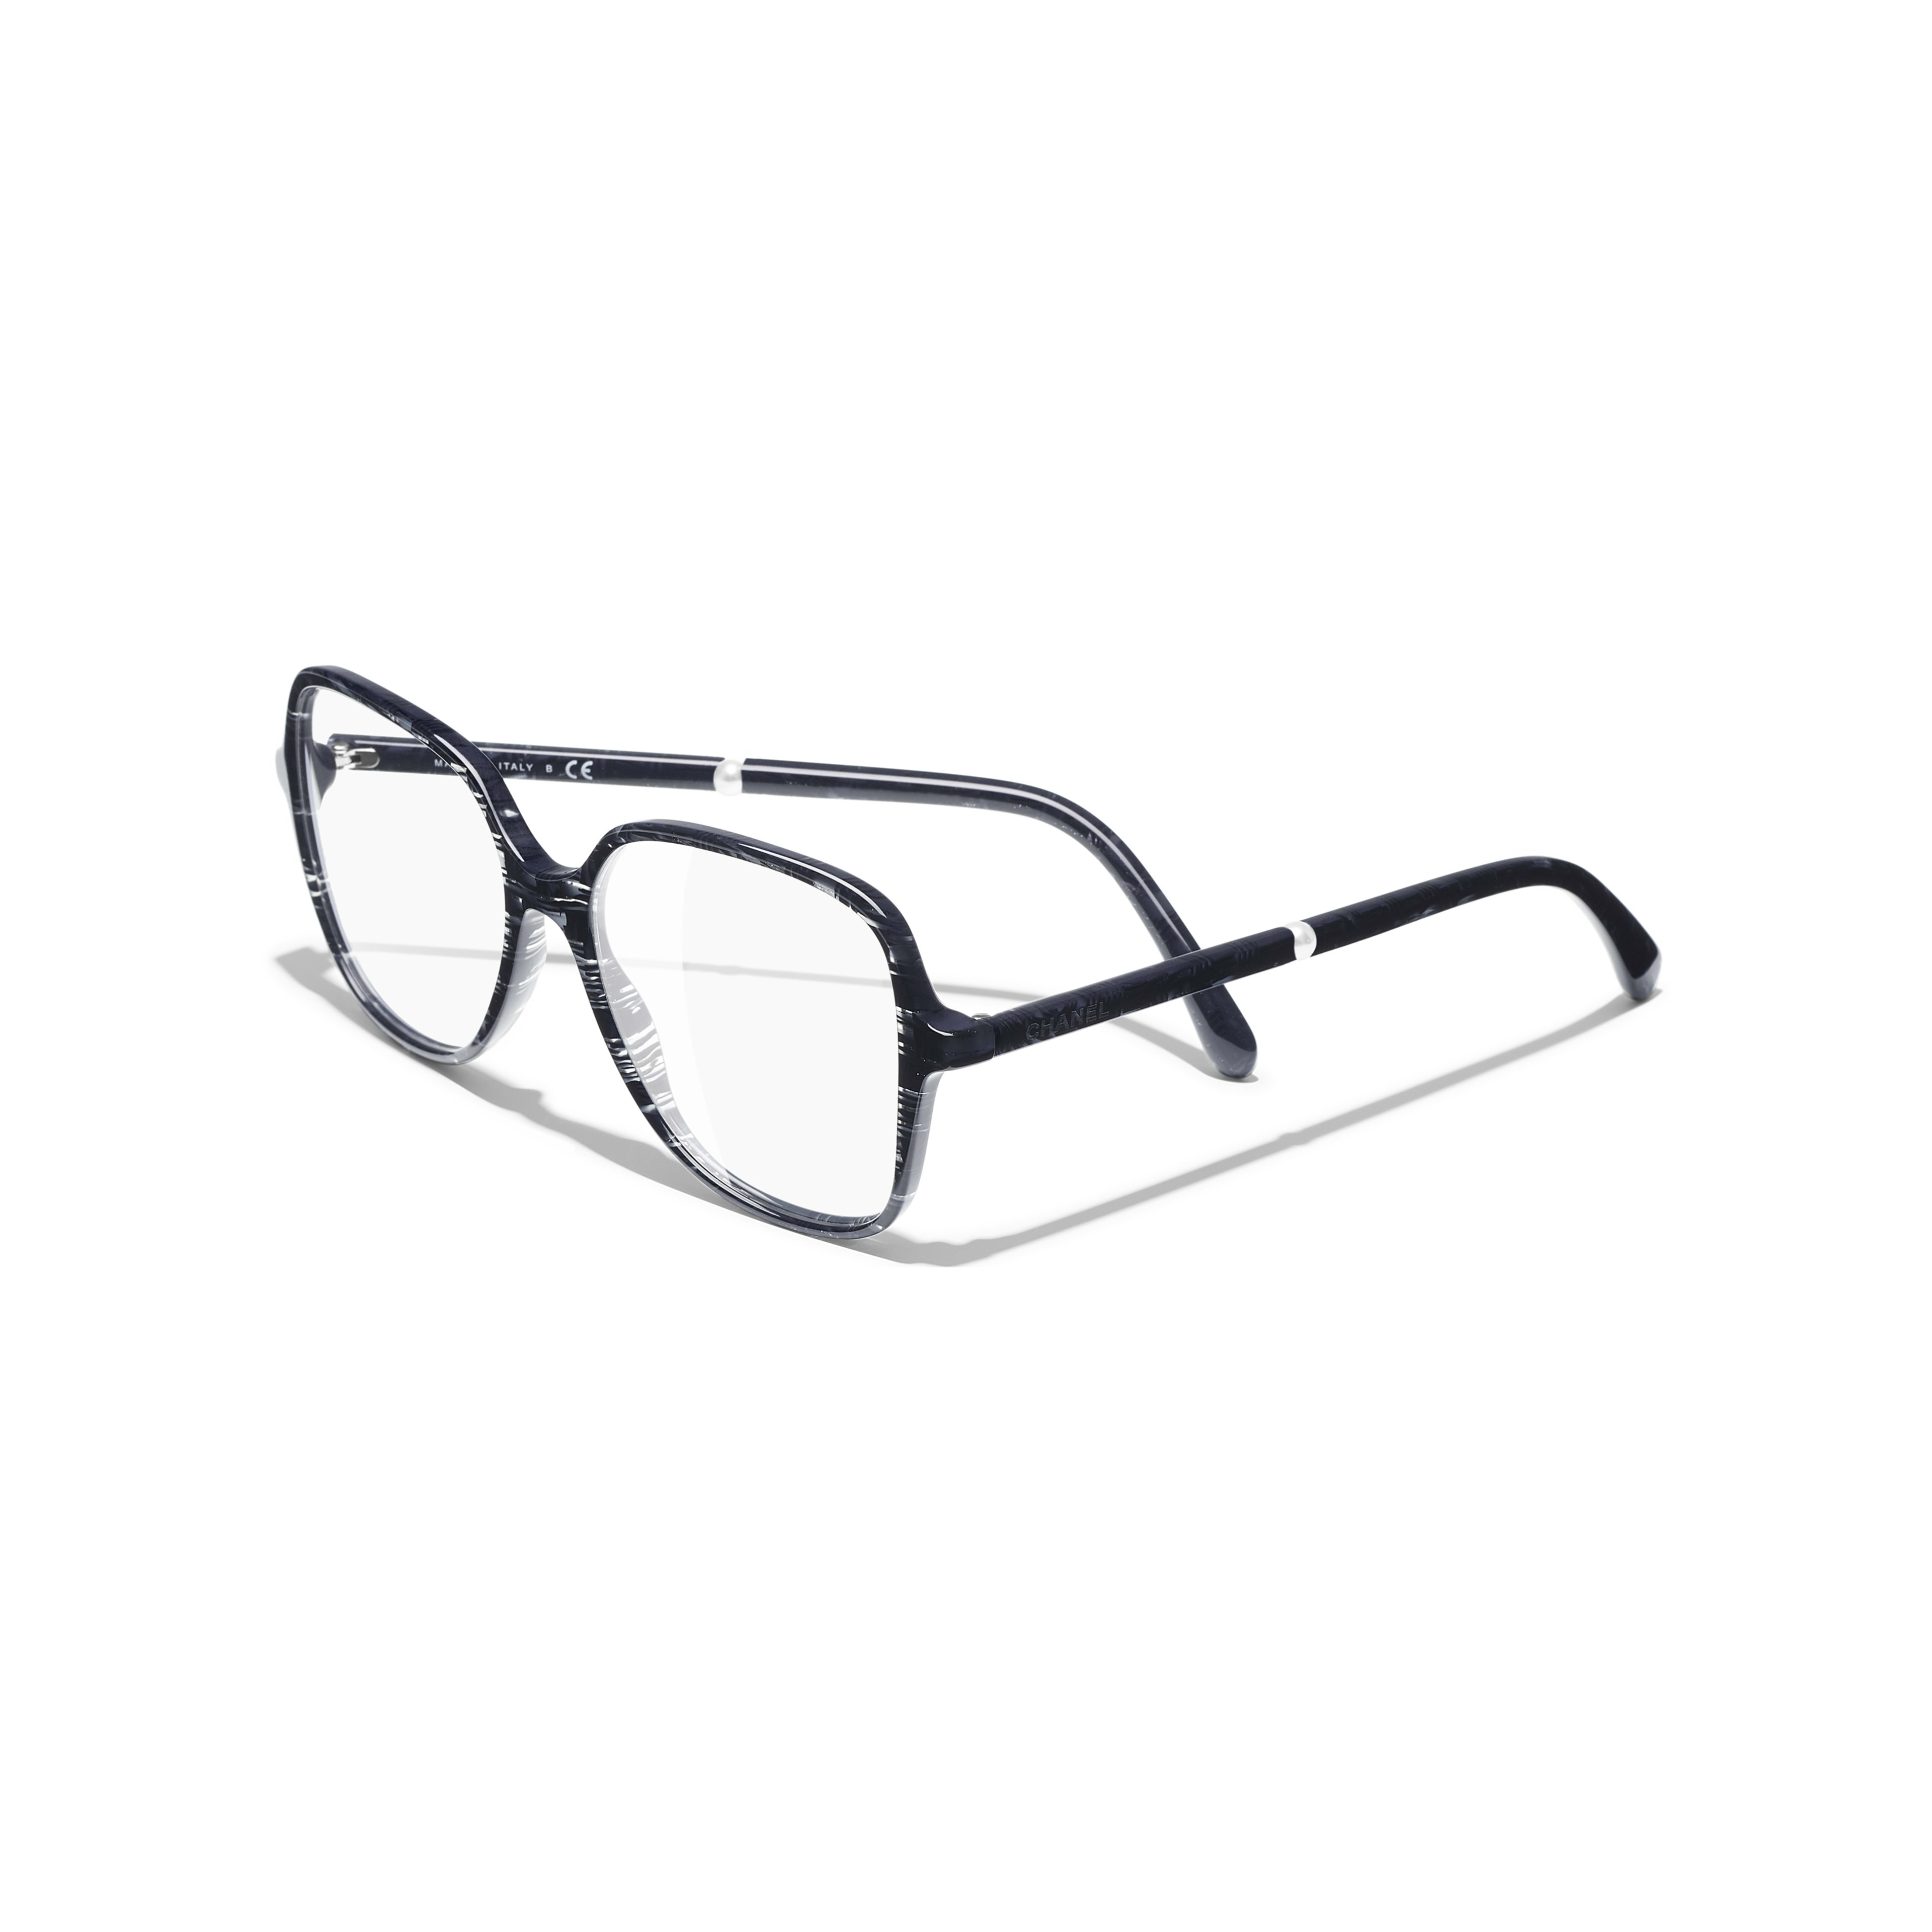 Square Eyeglasses - Glittered Dark Blue - Acetate & Imitation Pearls - Extra view - see standard sized version